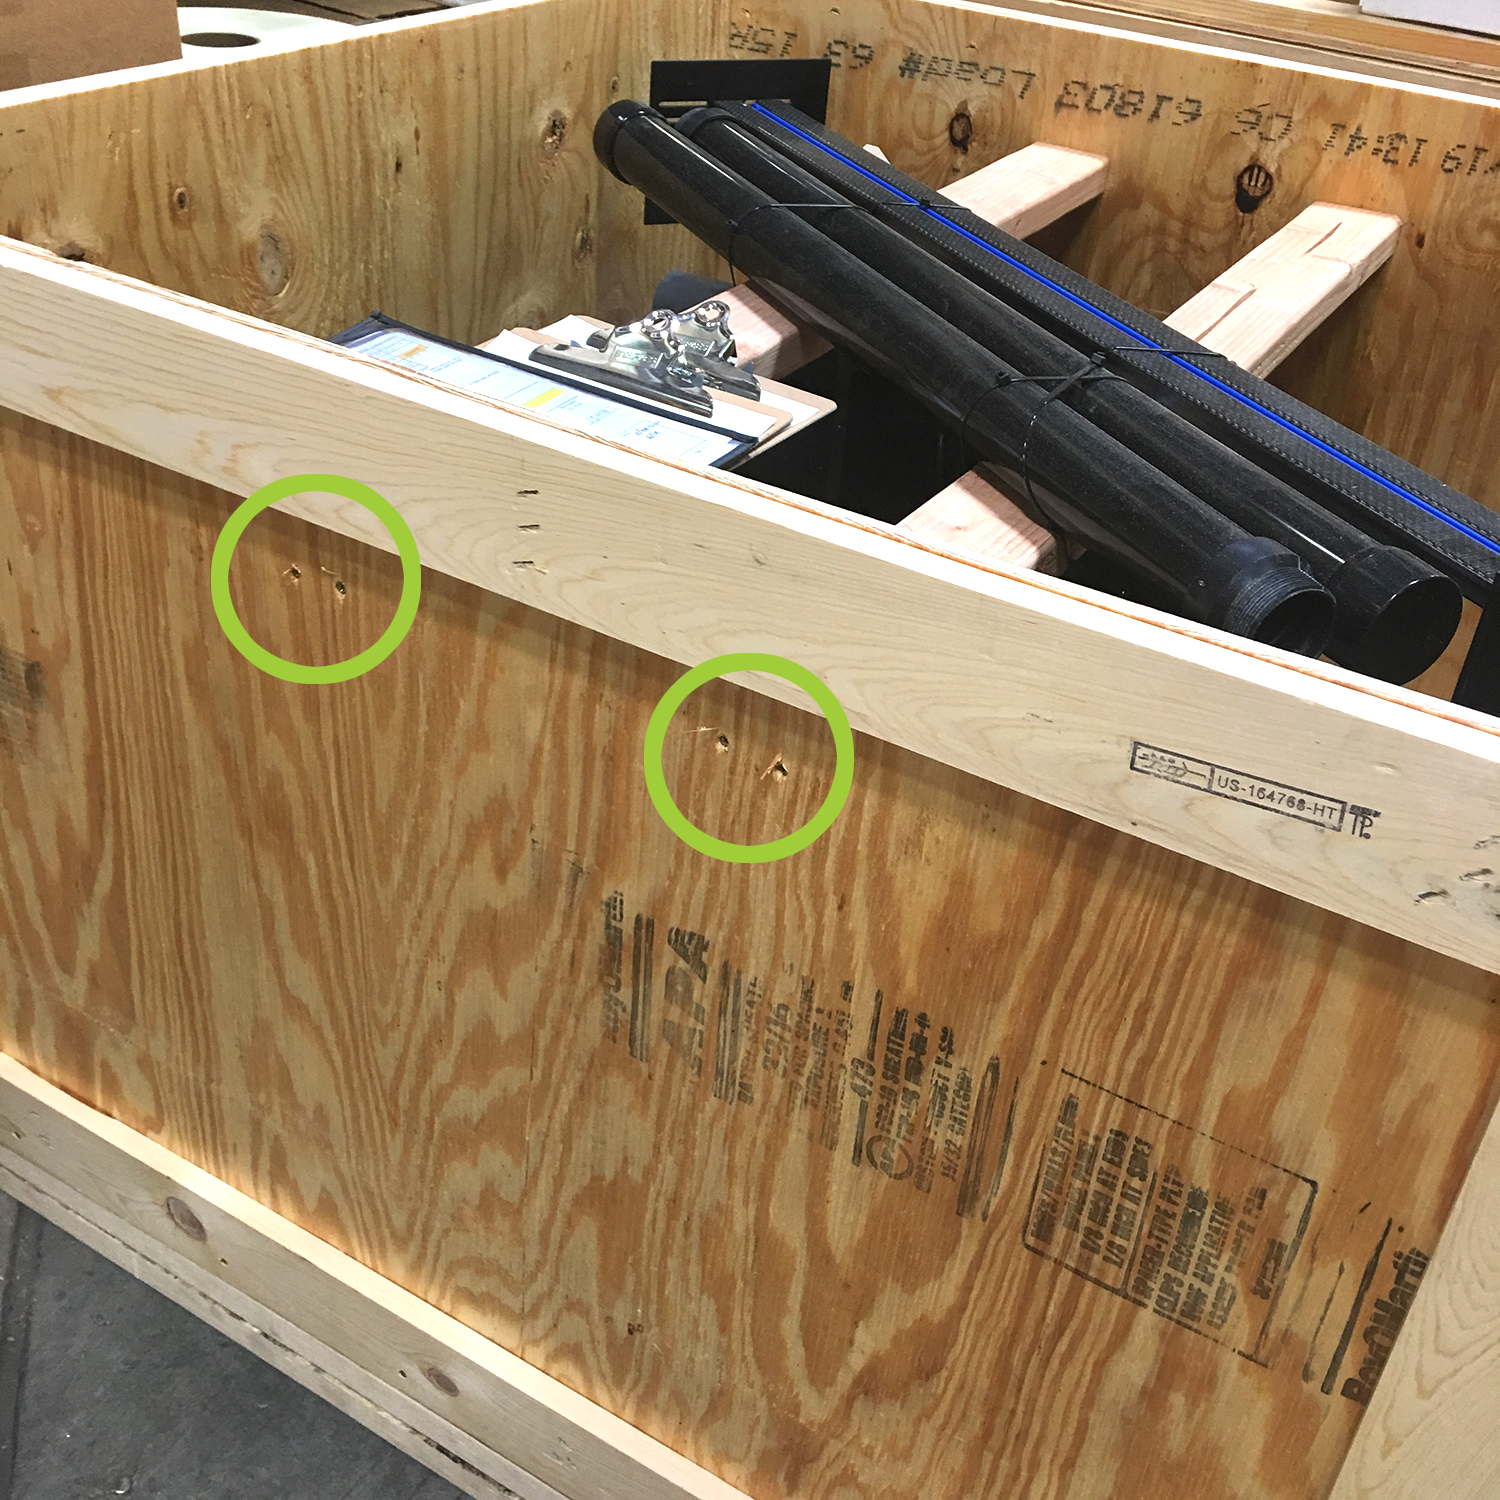 Remove the set(s) of two (2) screws on each side of the crate that secures the crossbar(s) inside the crate. Two crossbars shown in the image above – your specific crate may only include a single crossbar.